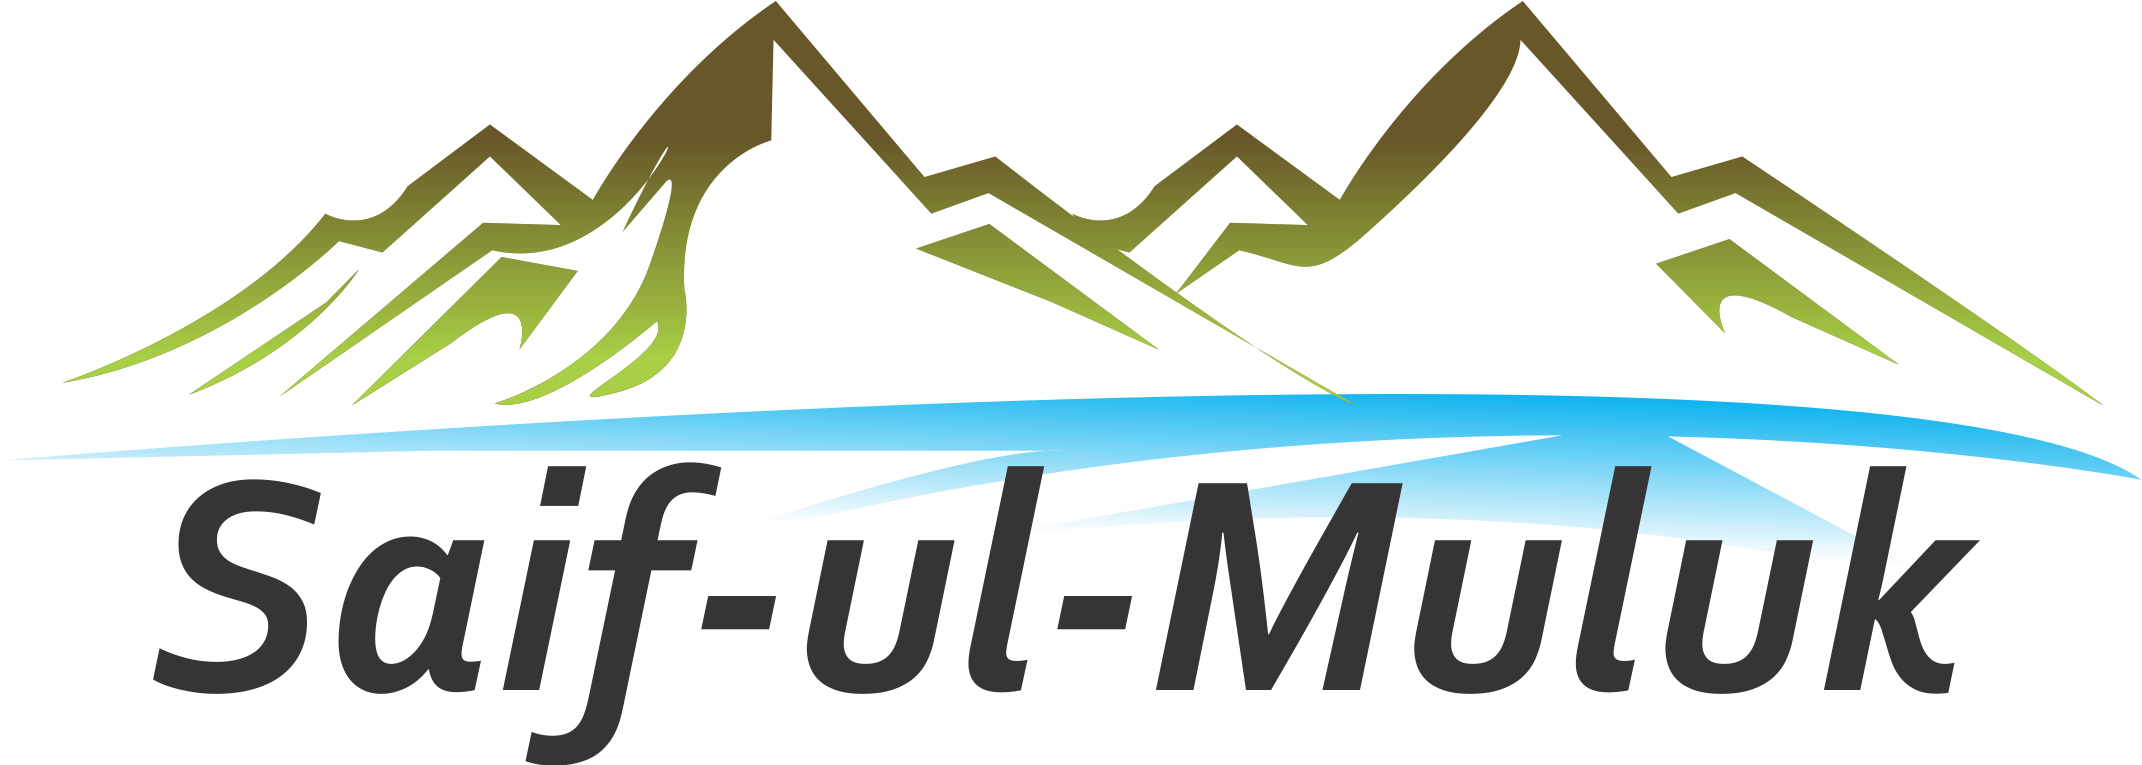 SaifulMuluk Tour and Travel Company | Saif-Ul-Muluk | BookYourTravel Accommodations Product - SaifulMuluk Tour and Travel Company | Saif-Ul-Muluk